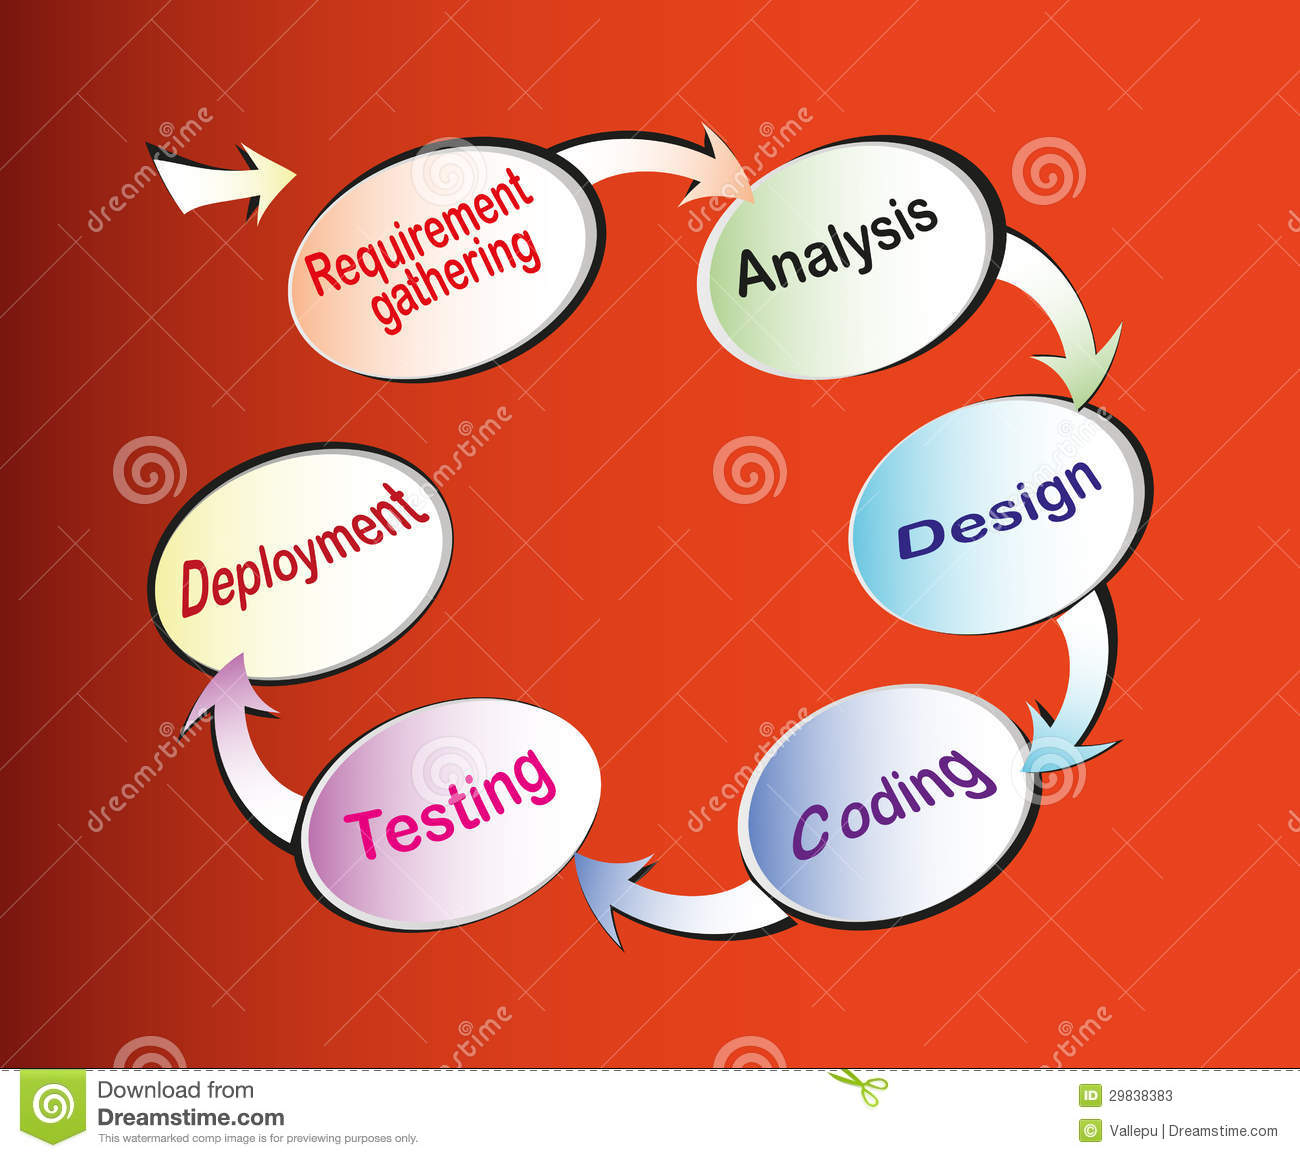 Software Engineering informative process essay